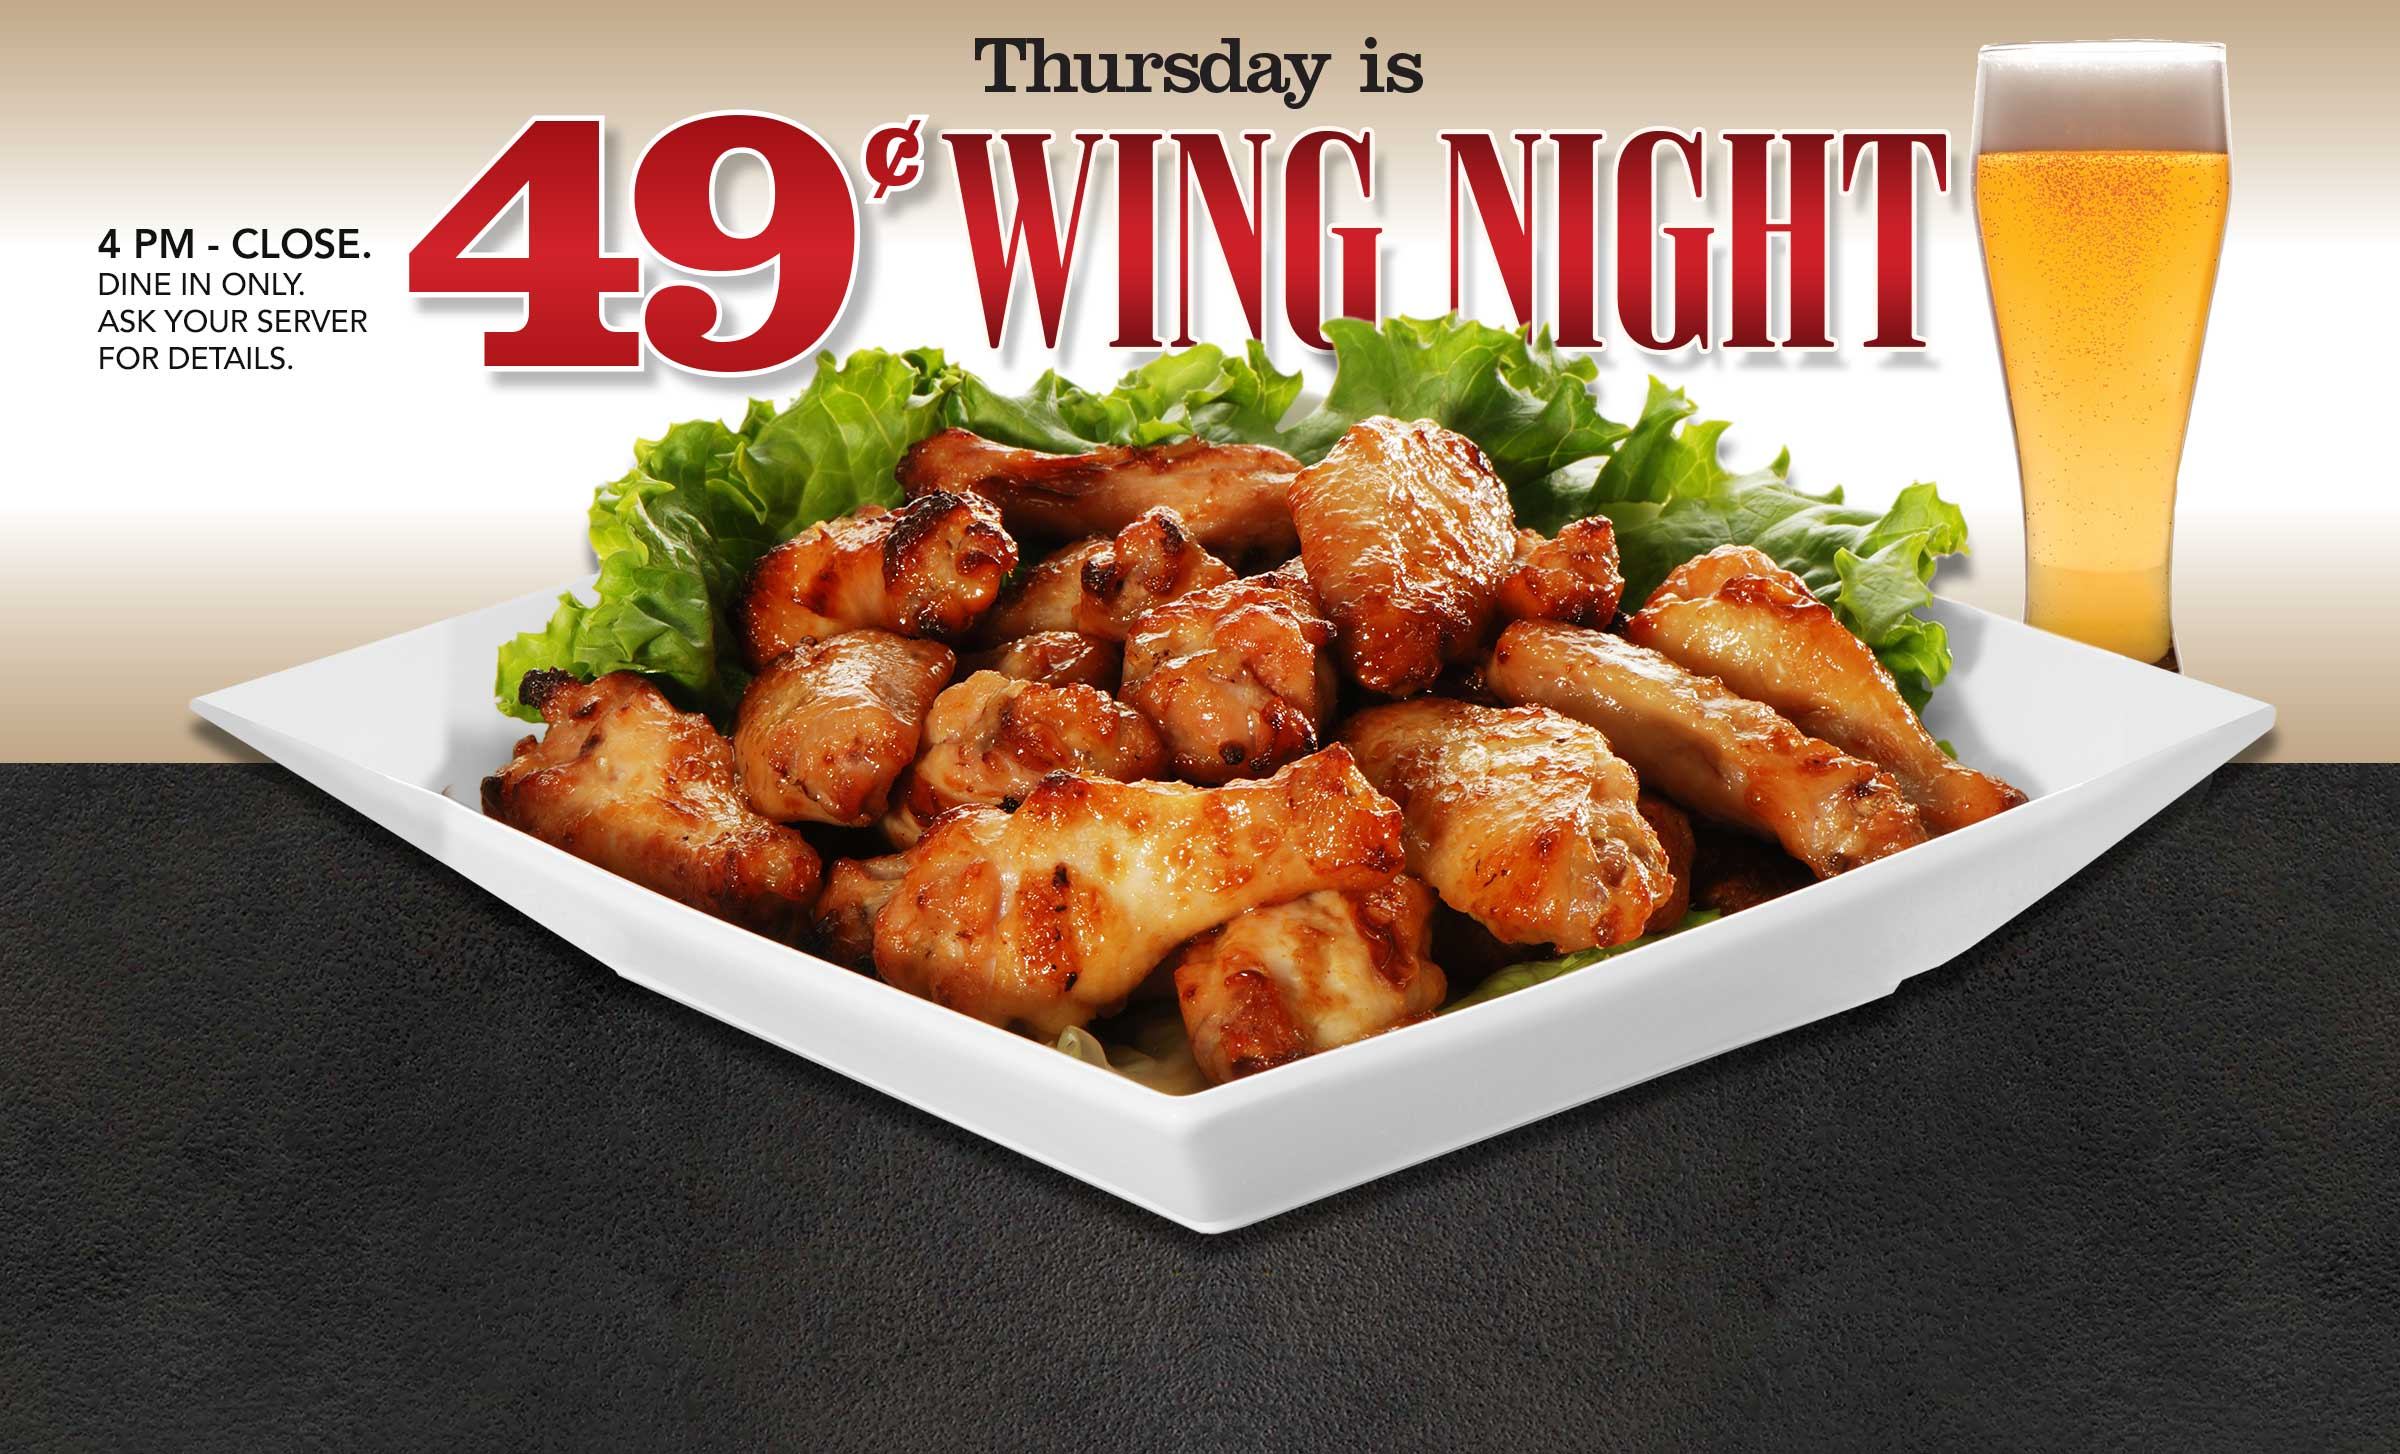 Thursday is Wing-Night!